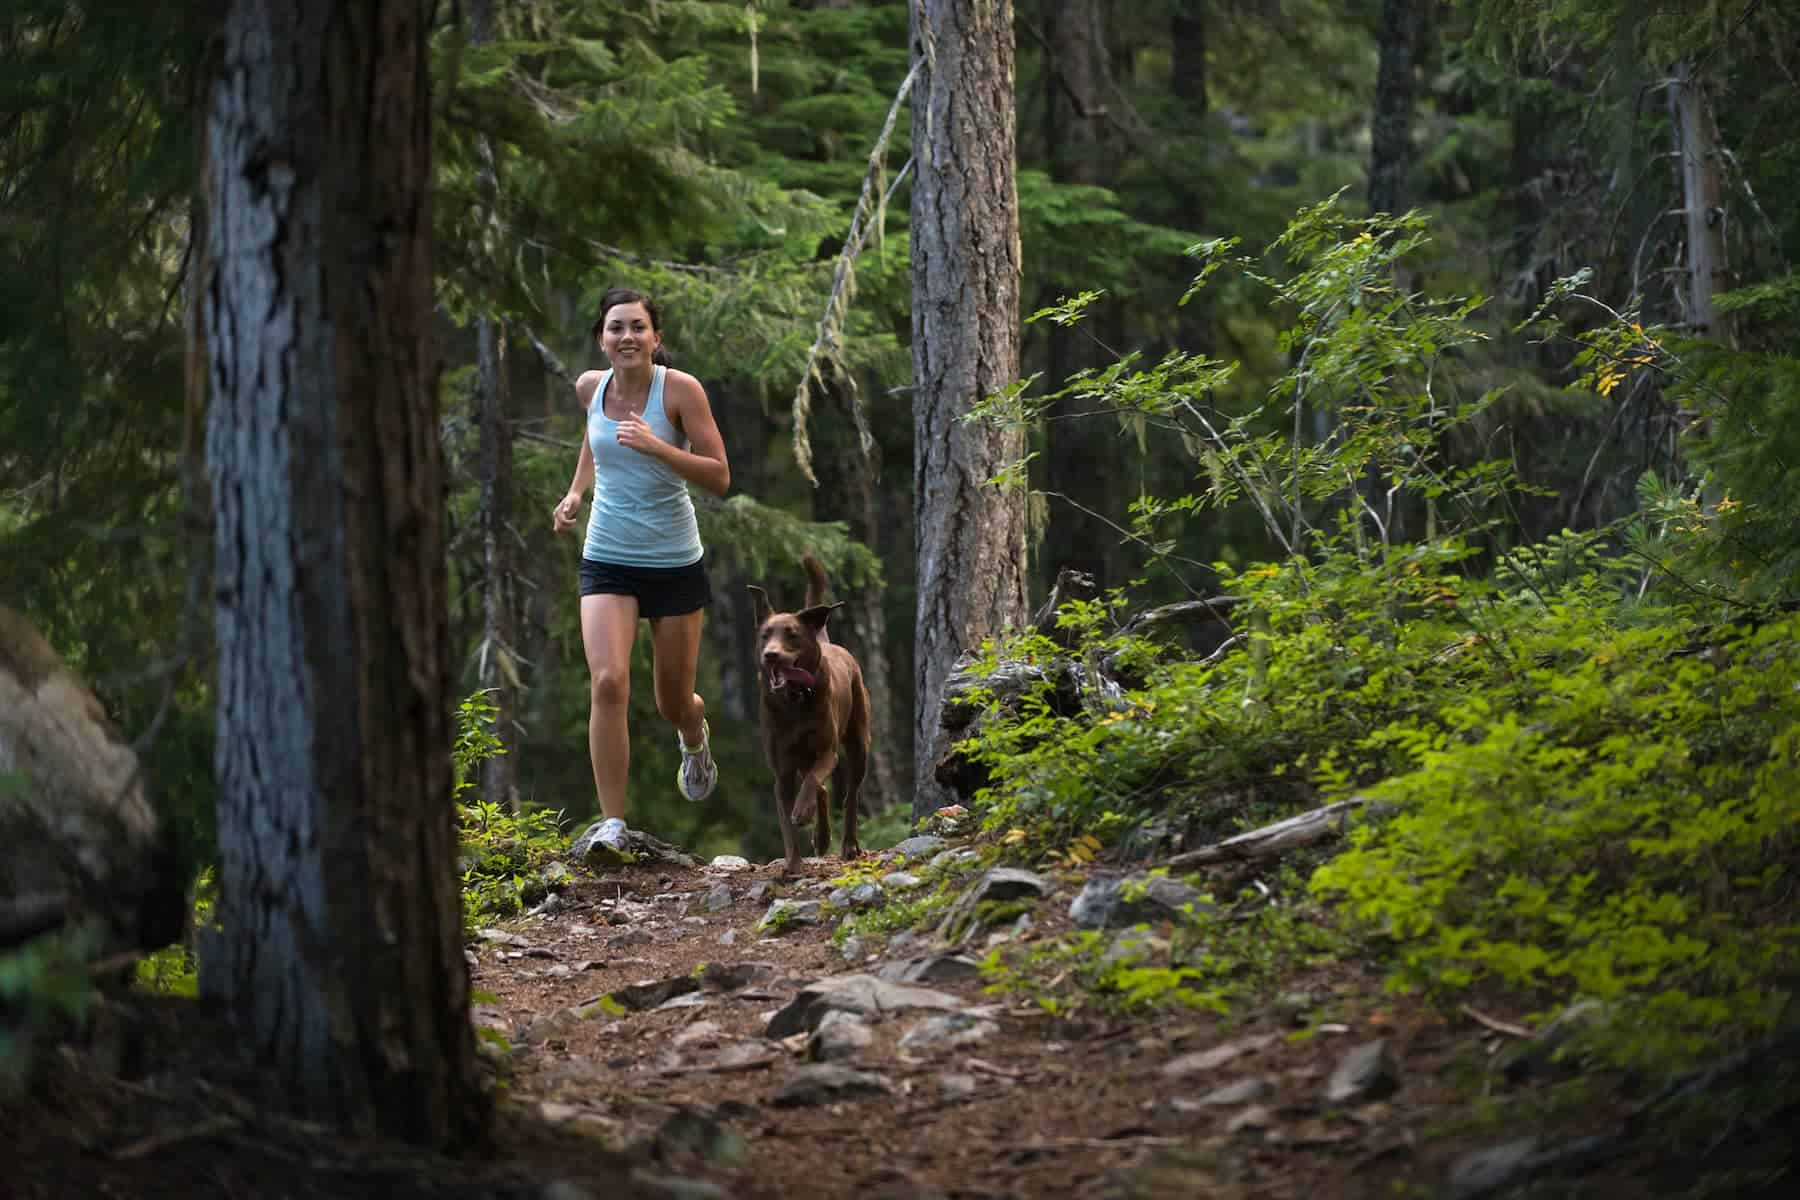 Slider_Woman jogging with dog in forest_1800x1200C